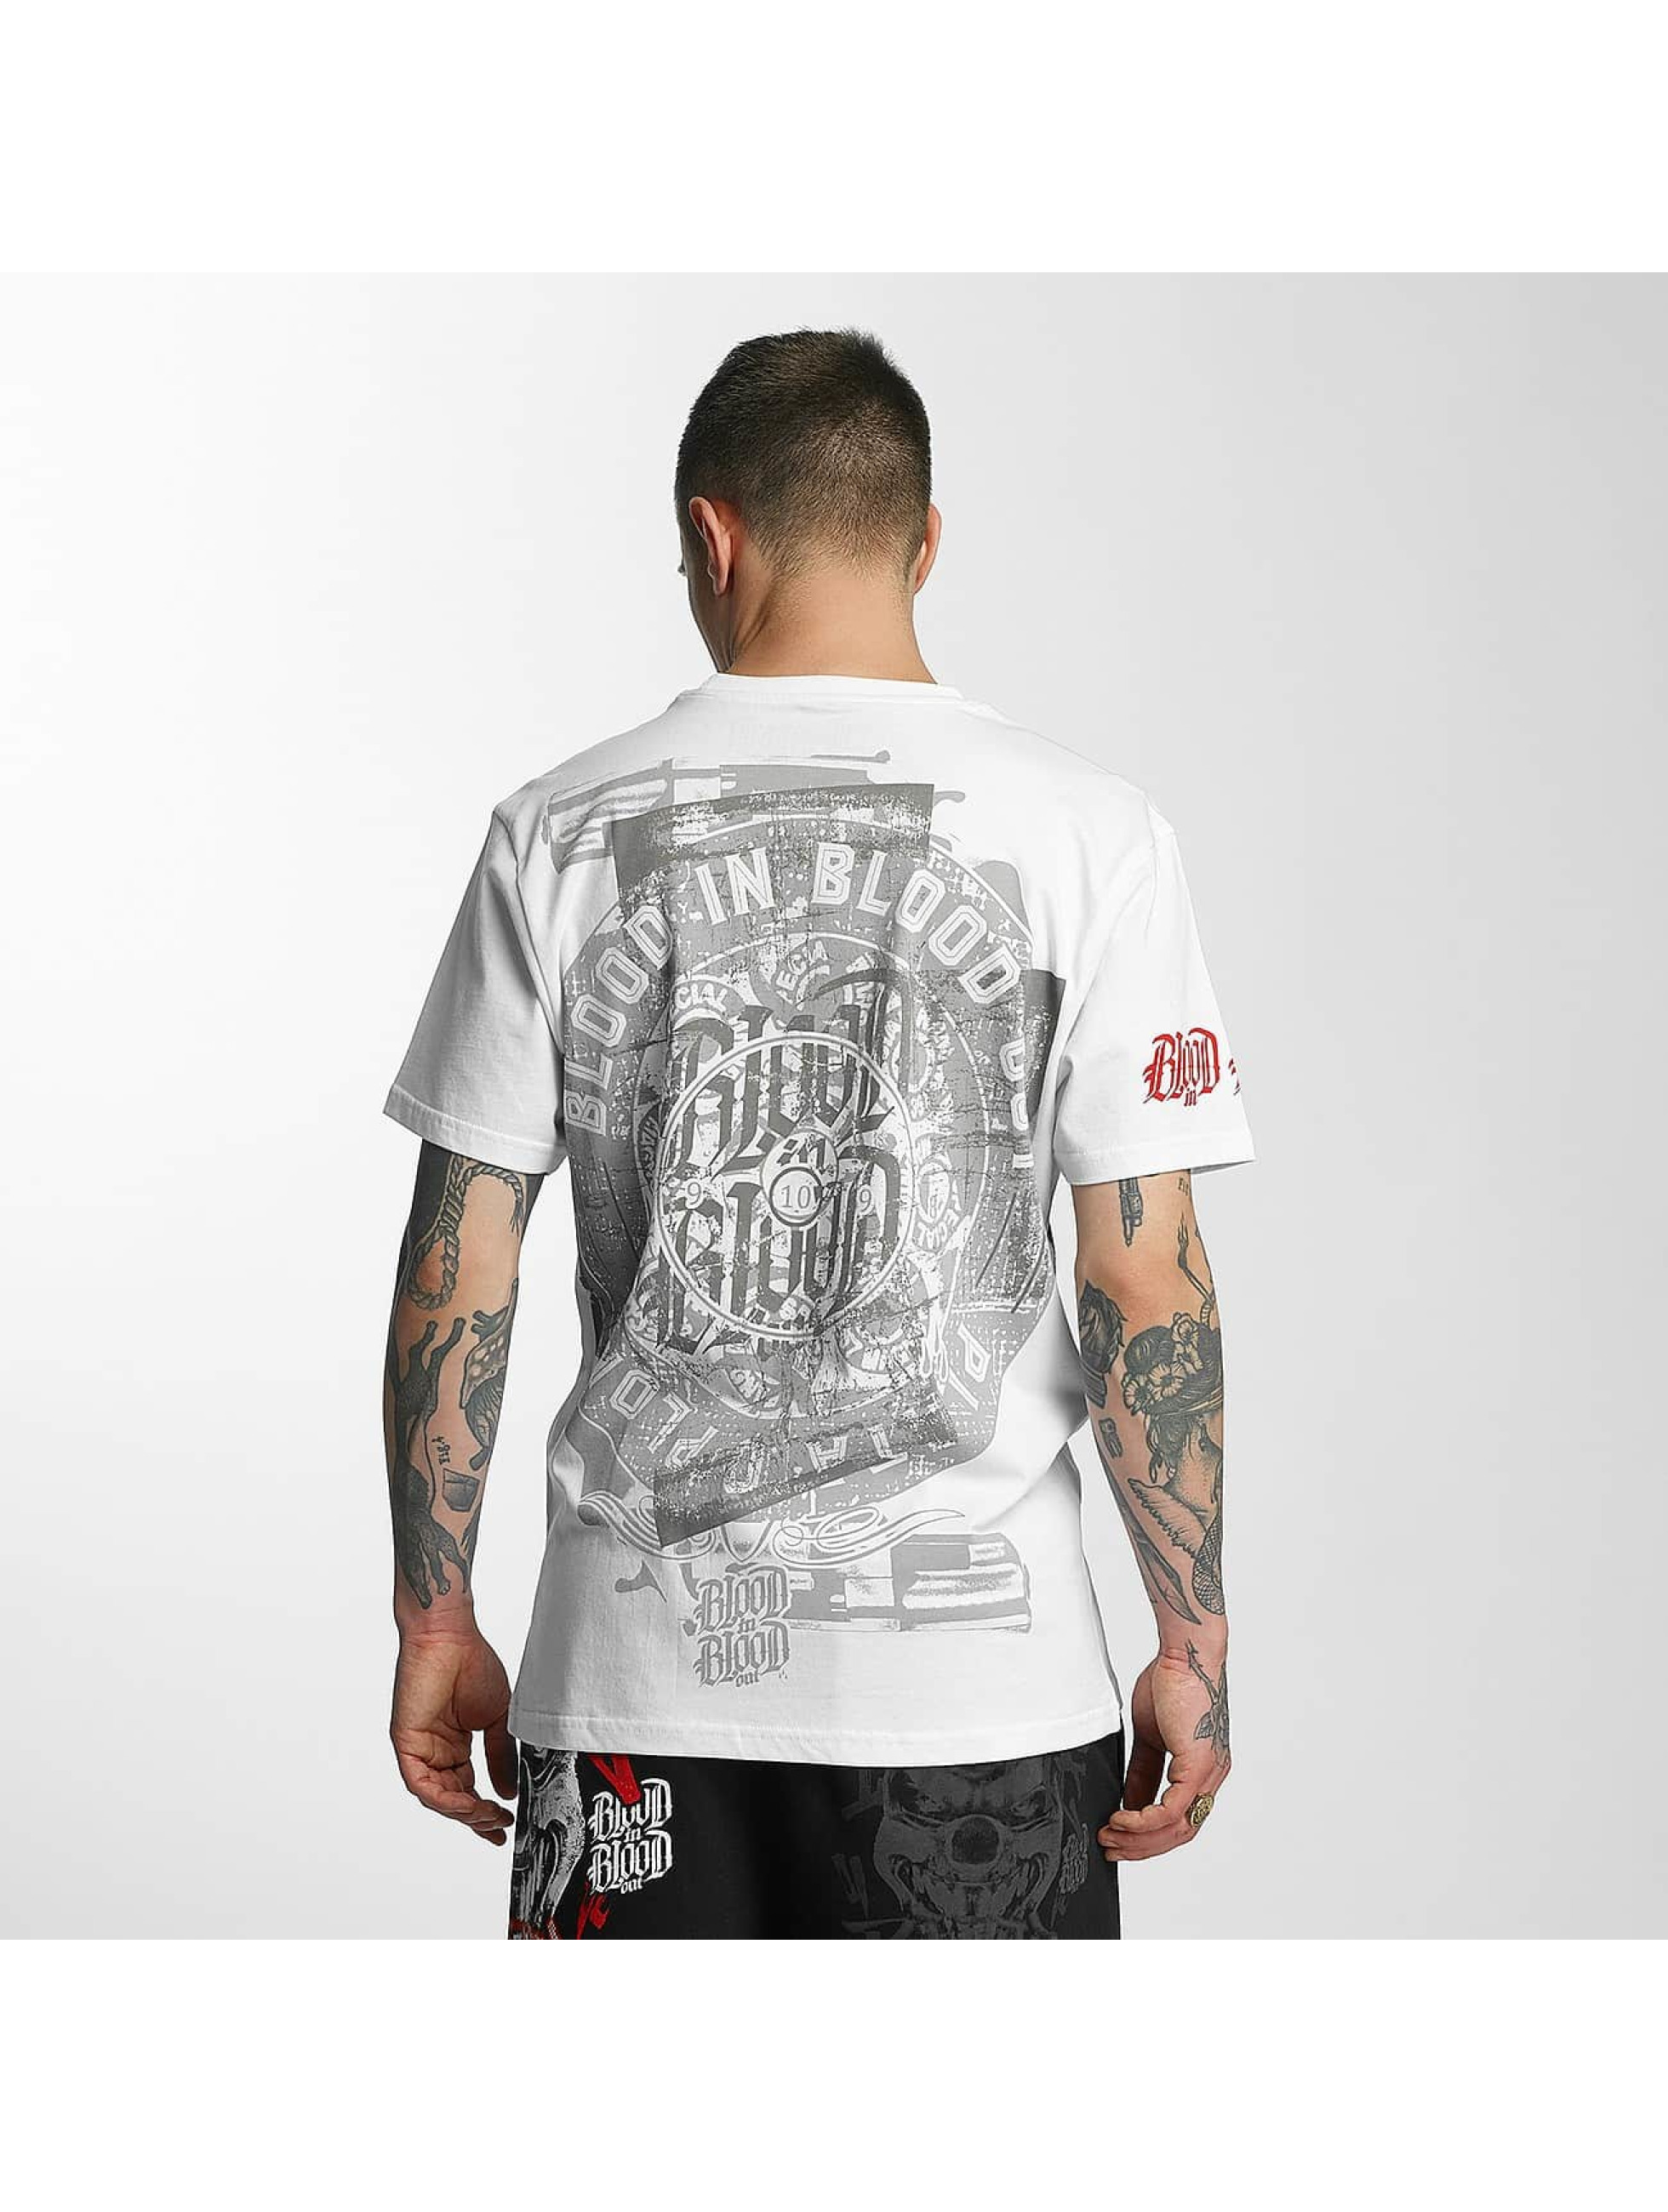 Blood In Blood Out Camiseta Out Plata O Plomo blanco